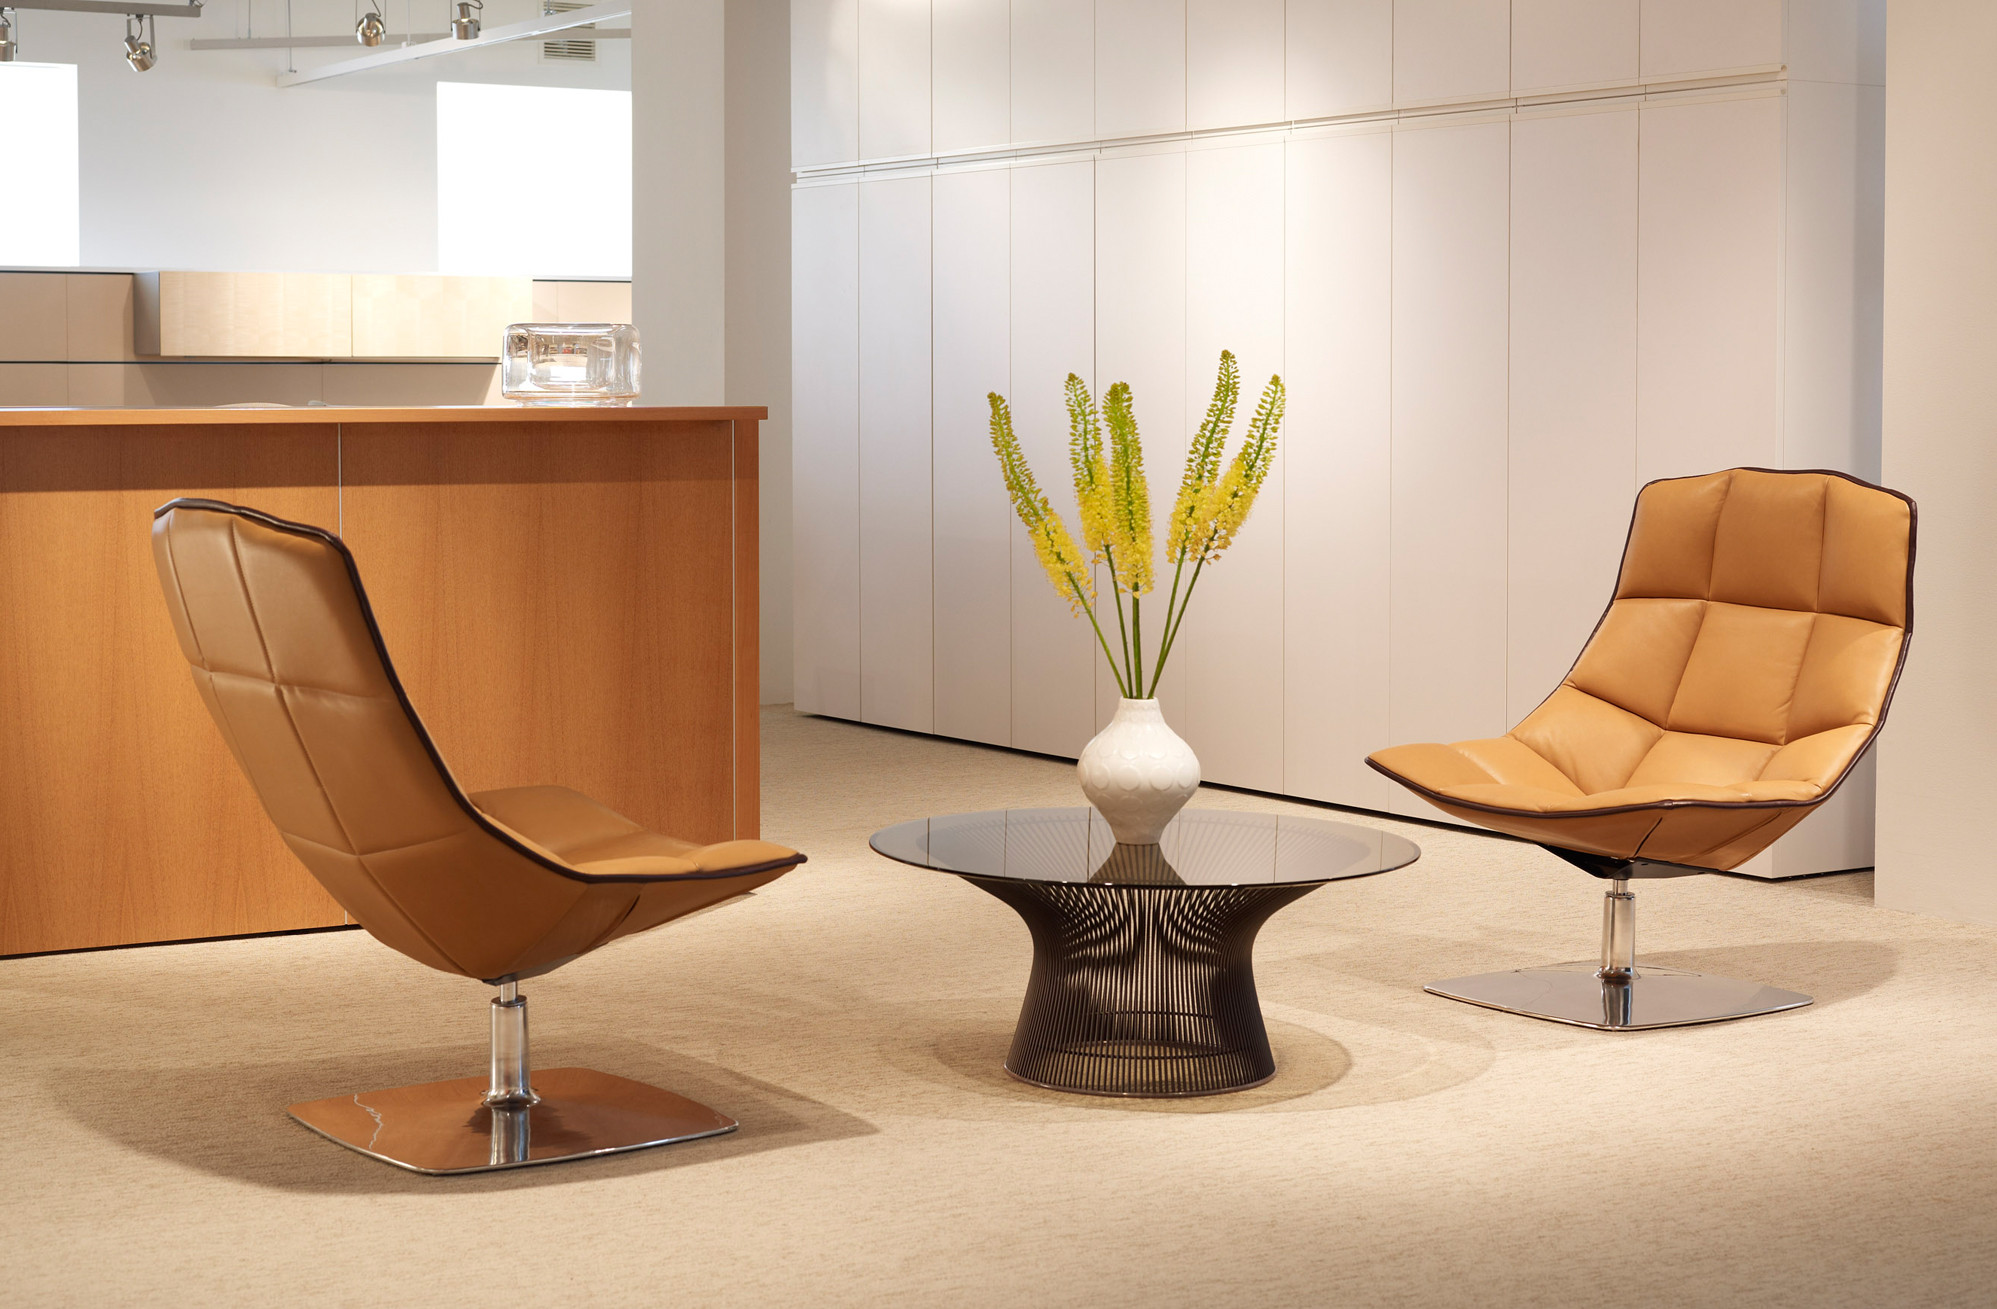 Jehs + Laub Lounge Chairs by Knoll